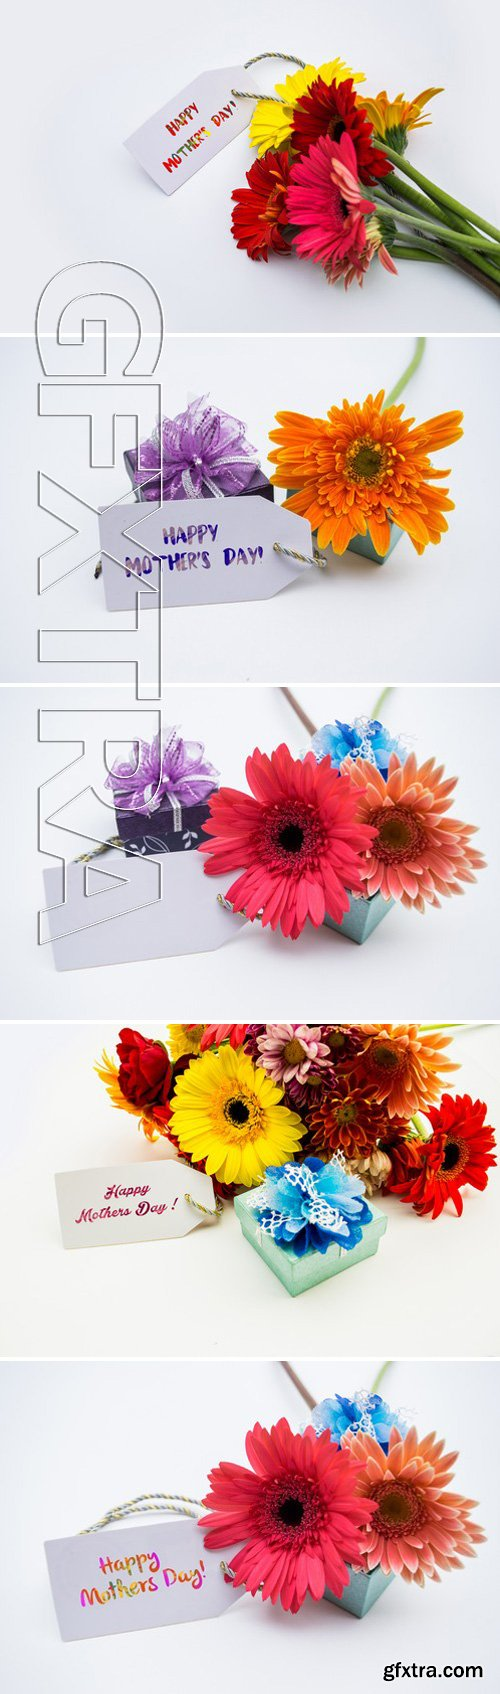 Stock Photos - Studio Macro Of Mother\'s Day Flowers With Soft Shadows Against A White Background